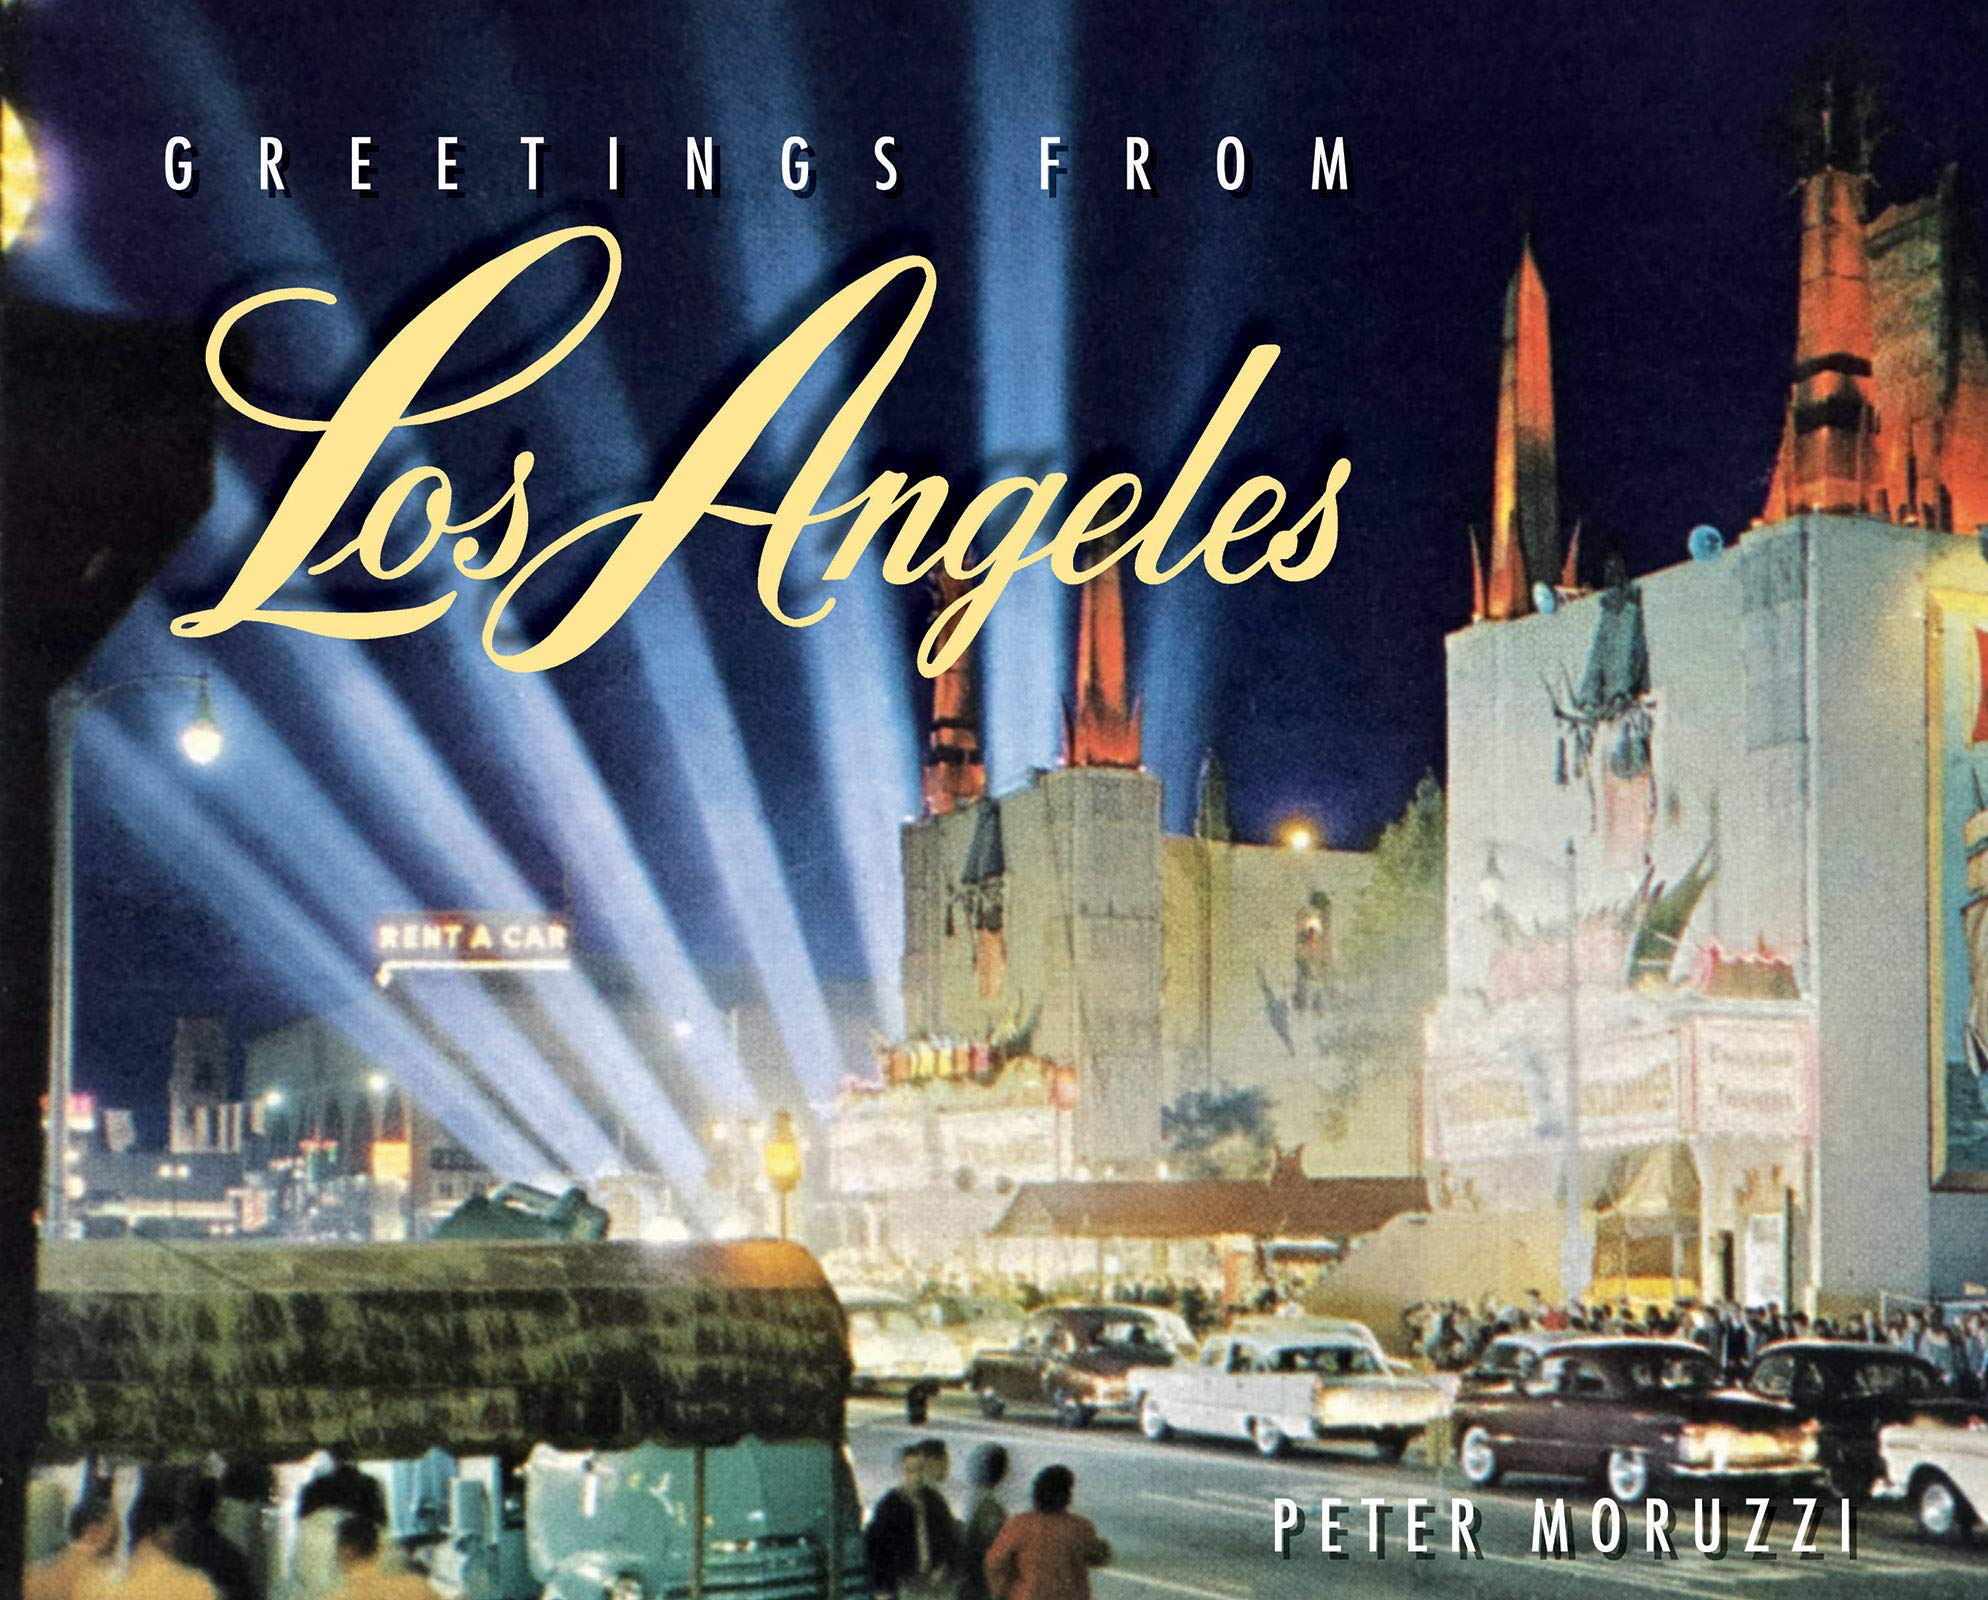 greetings from Los Angeles book